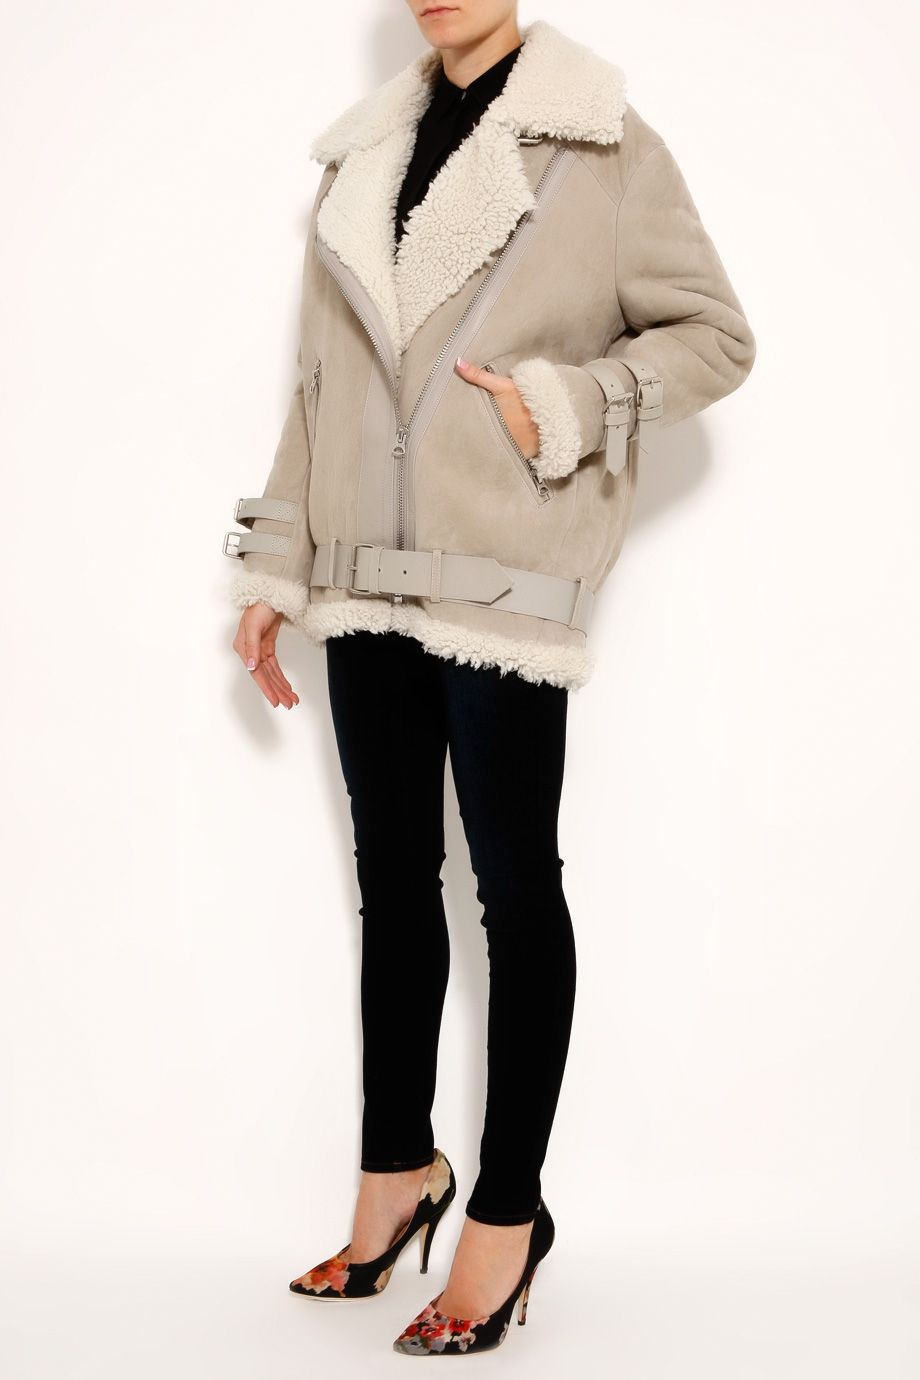 96107060db2c Acne Velocite Shearling Jacket in Gray (grey)   Lyst   My Style ...